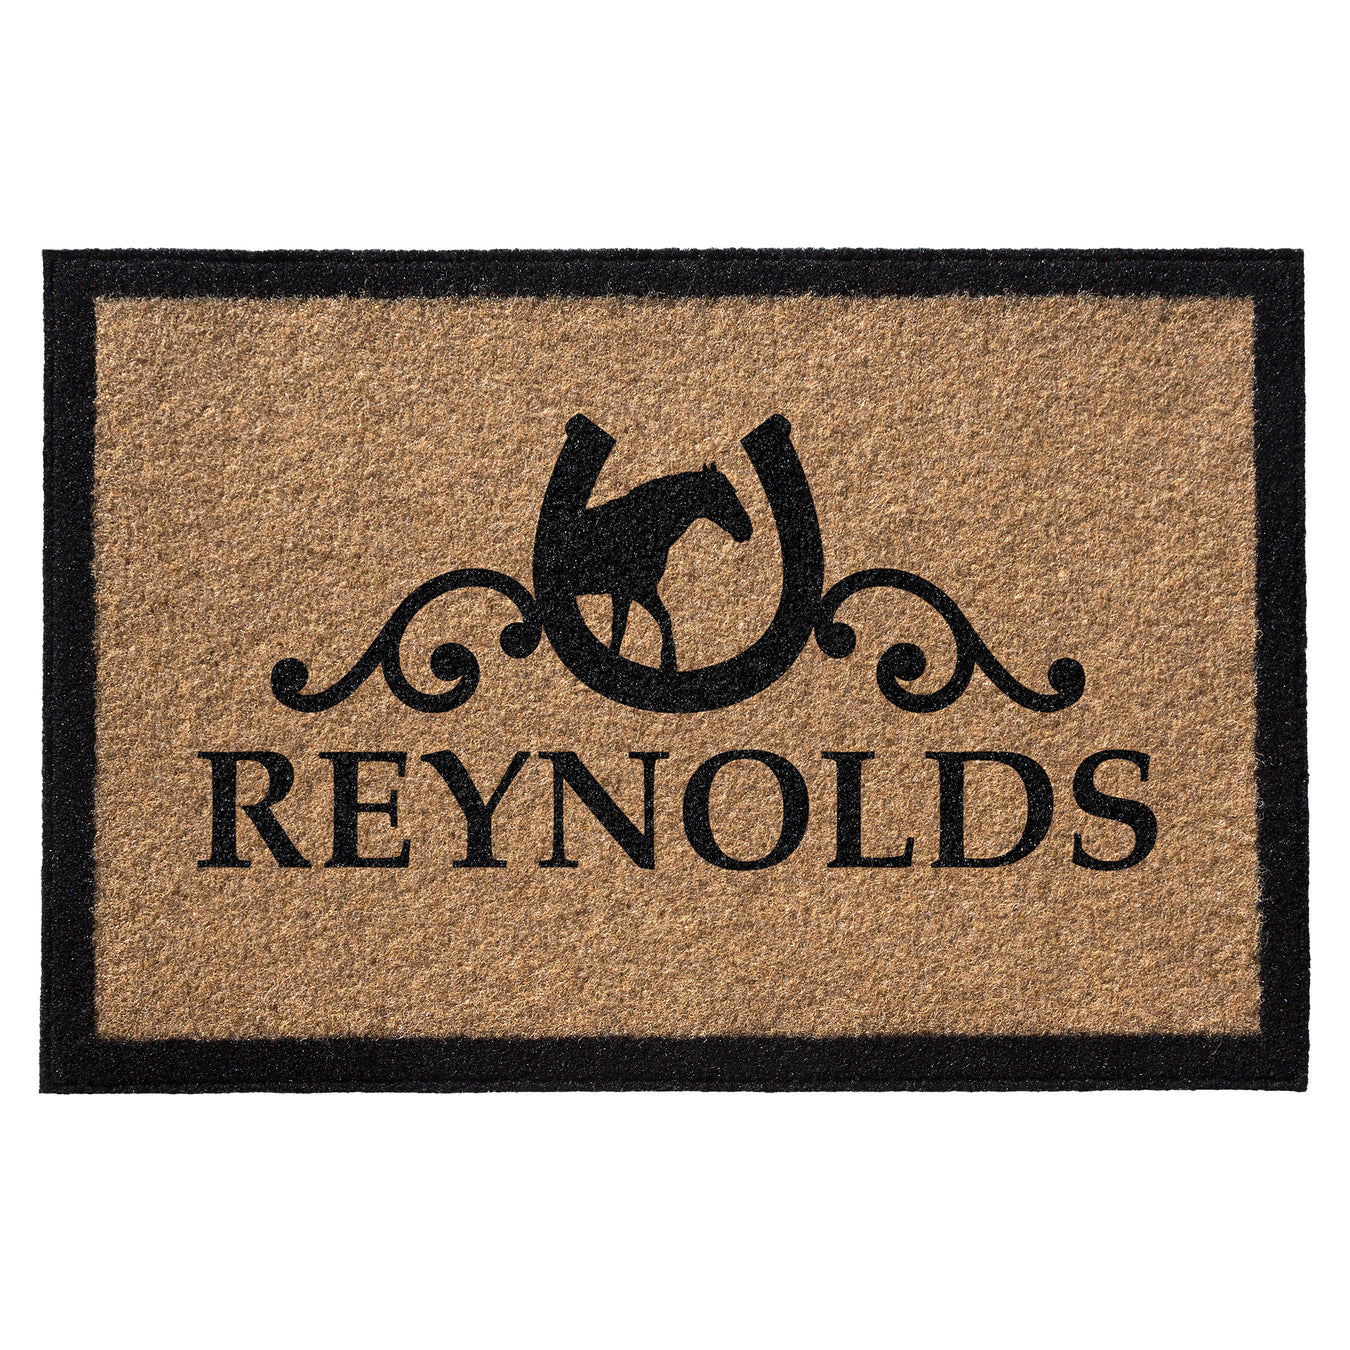 Infinity Custom Mats™ All-Weather Personalized Door Mat - STYLE: REYNOLDS COLOR:TAN